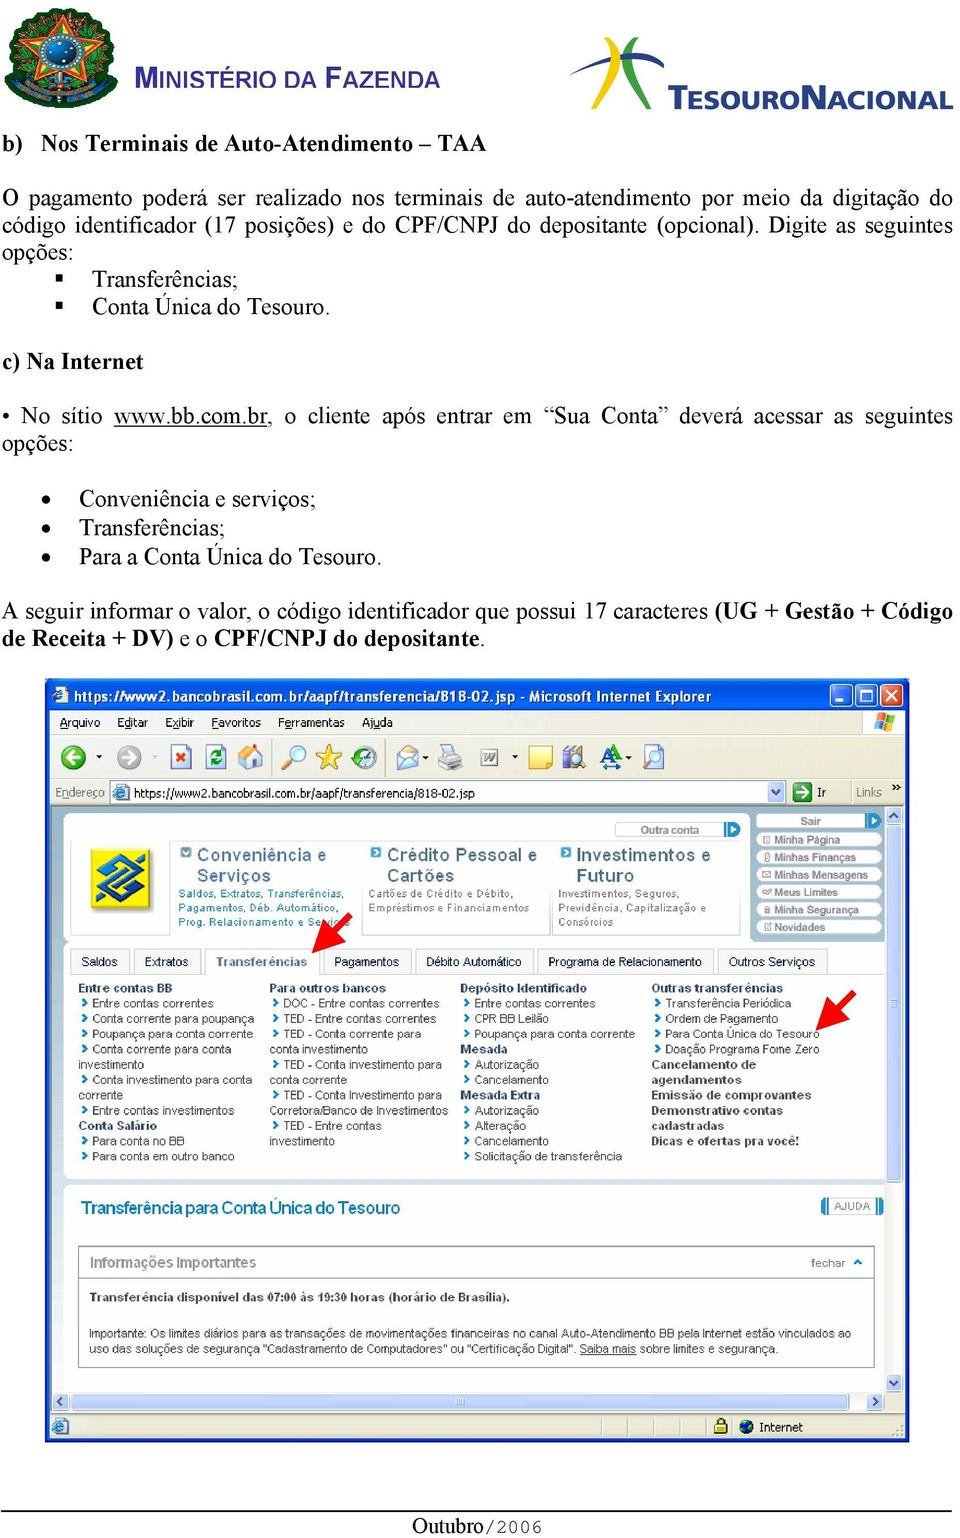 c) Na Internet No sítio www.bb.com.